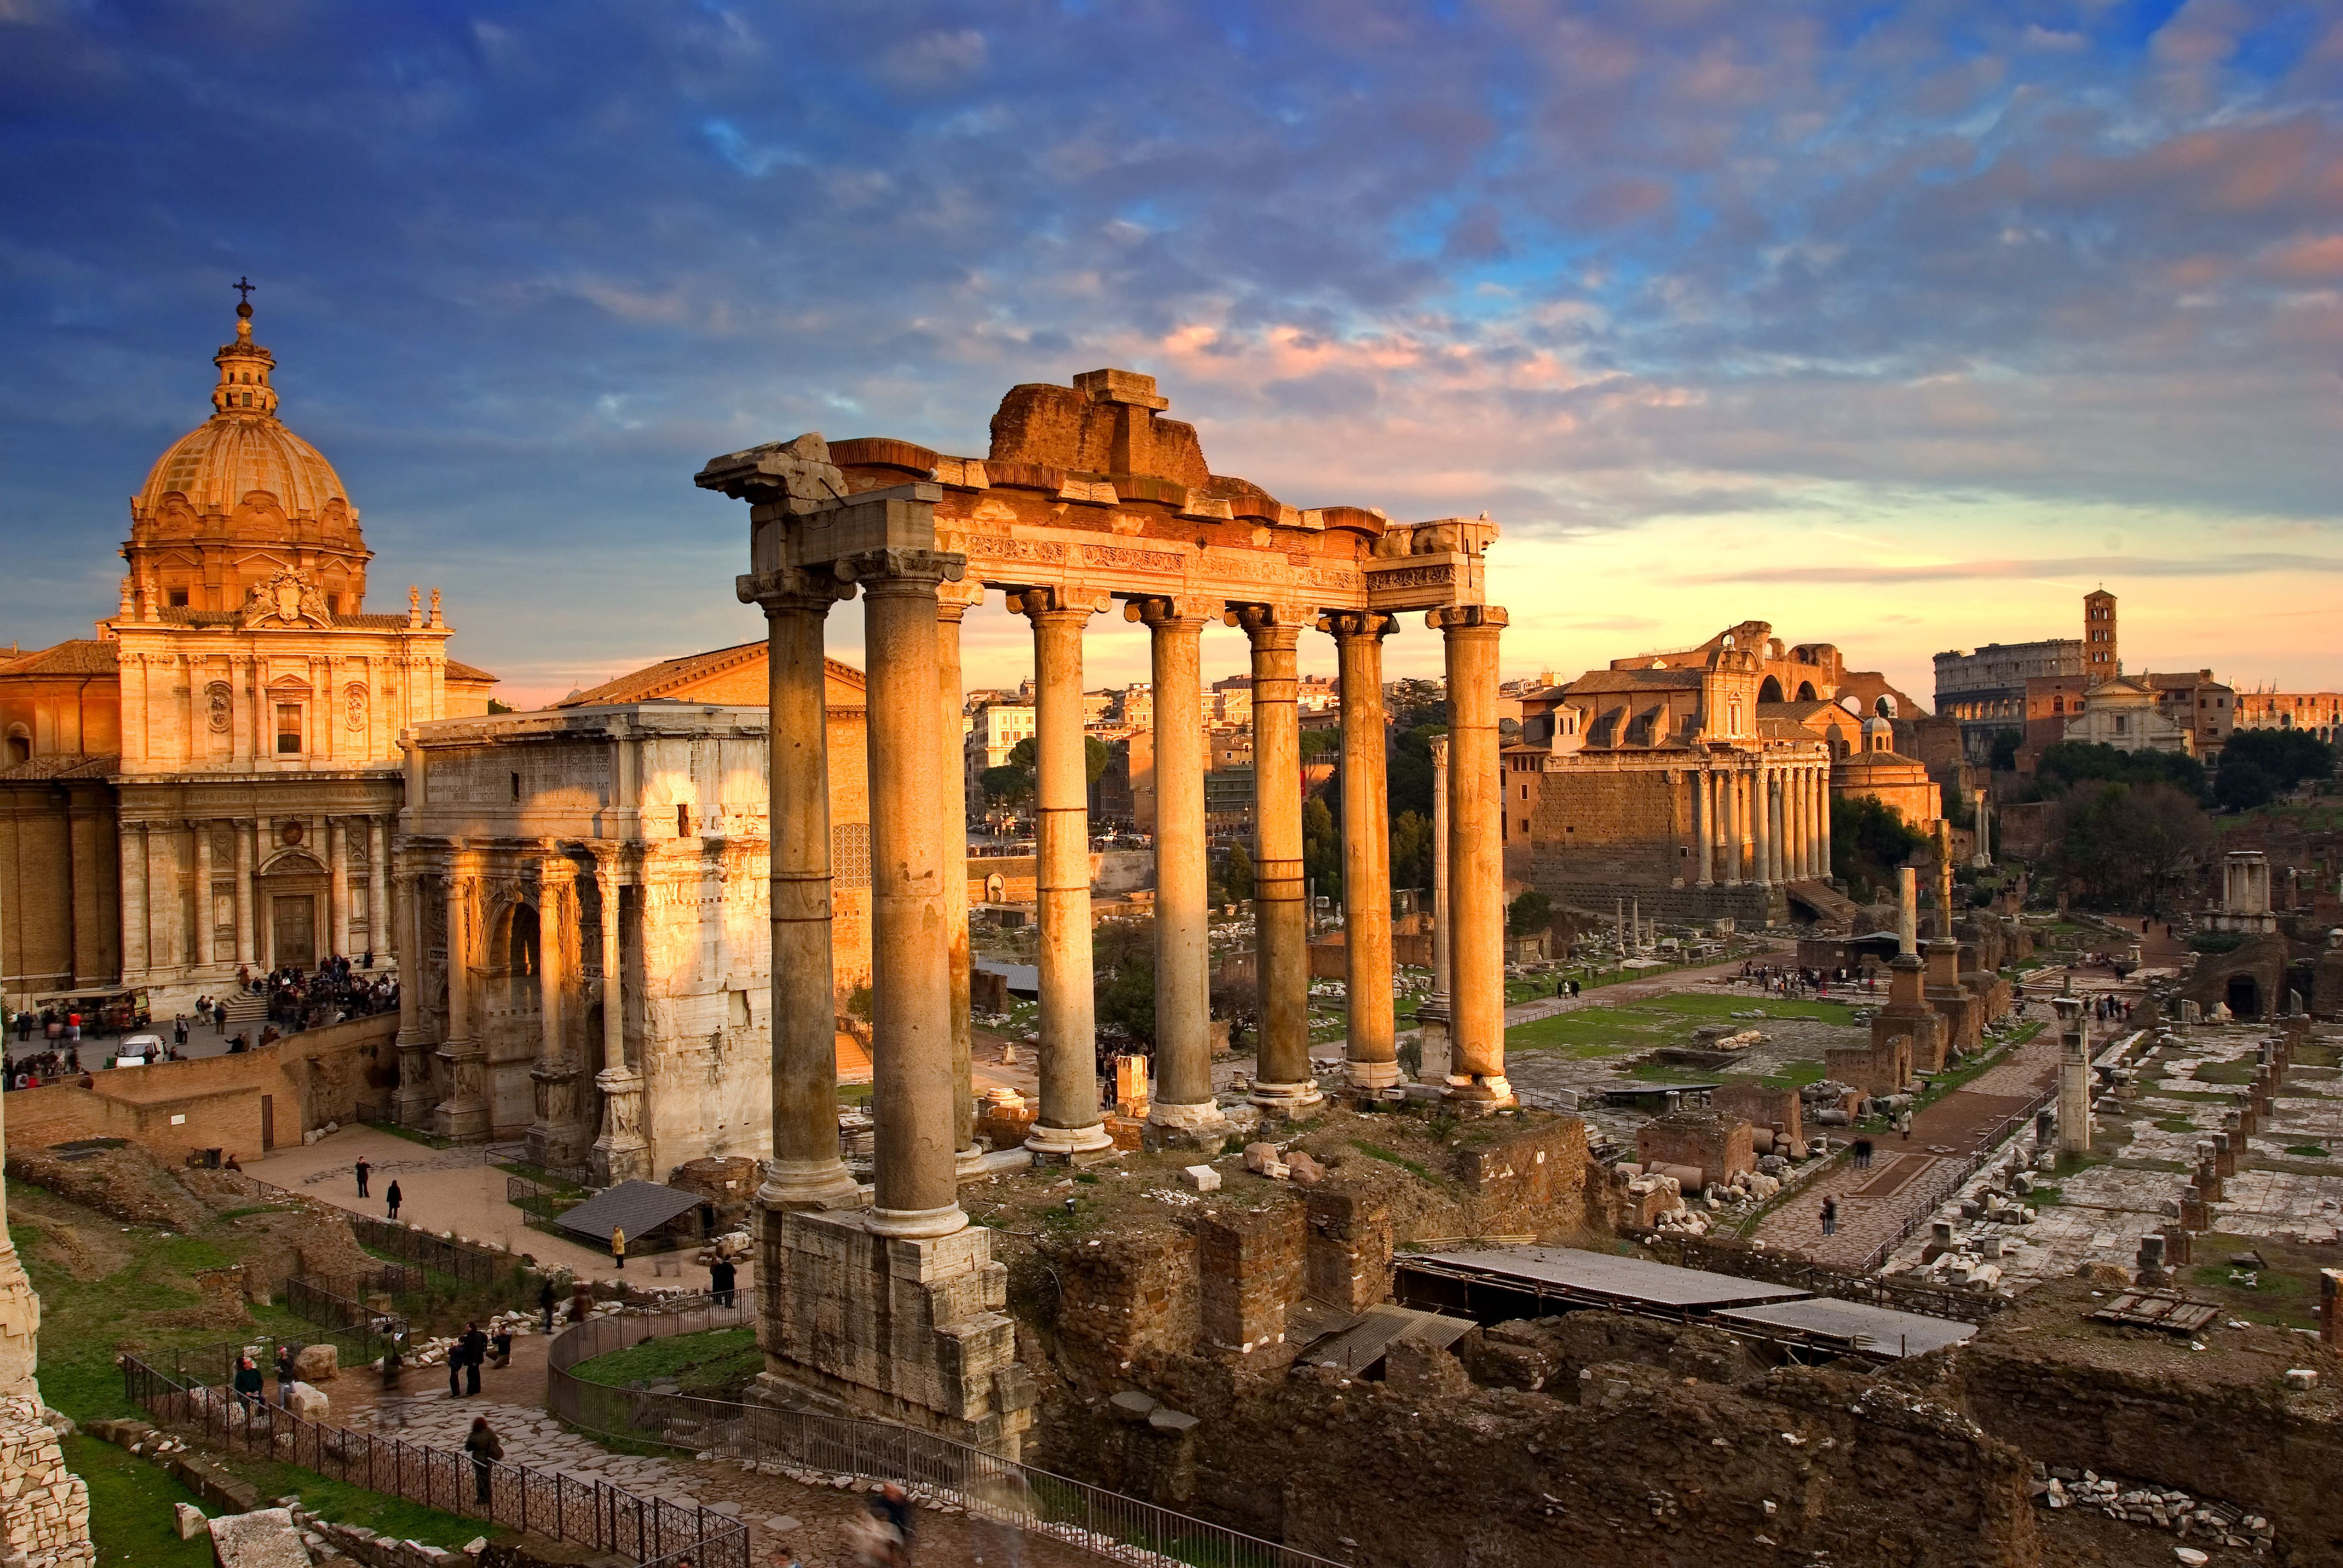 Aerial View Of The Colosseum In Rome Roman Architecture And Engineering Pictures Ancient Rome History Com Roman Architecture Rome Ancient Rome